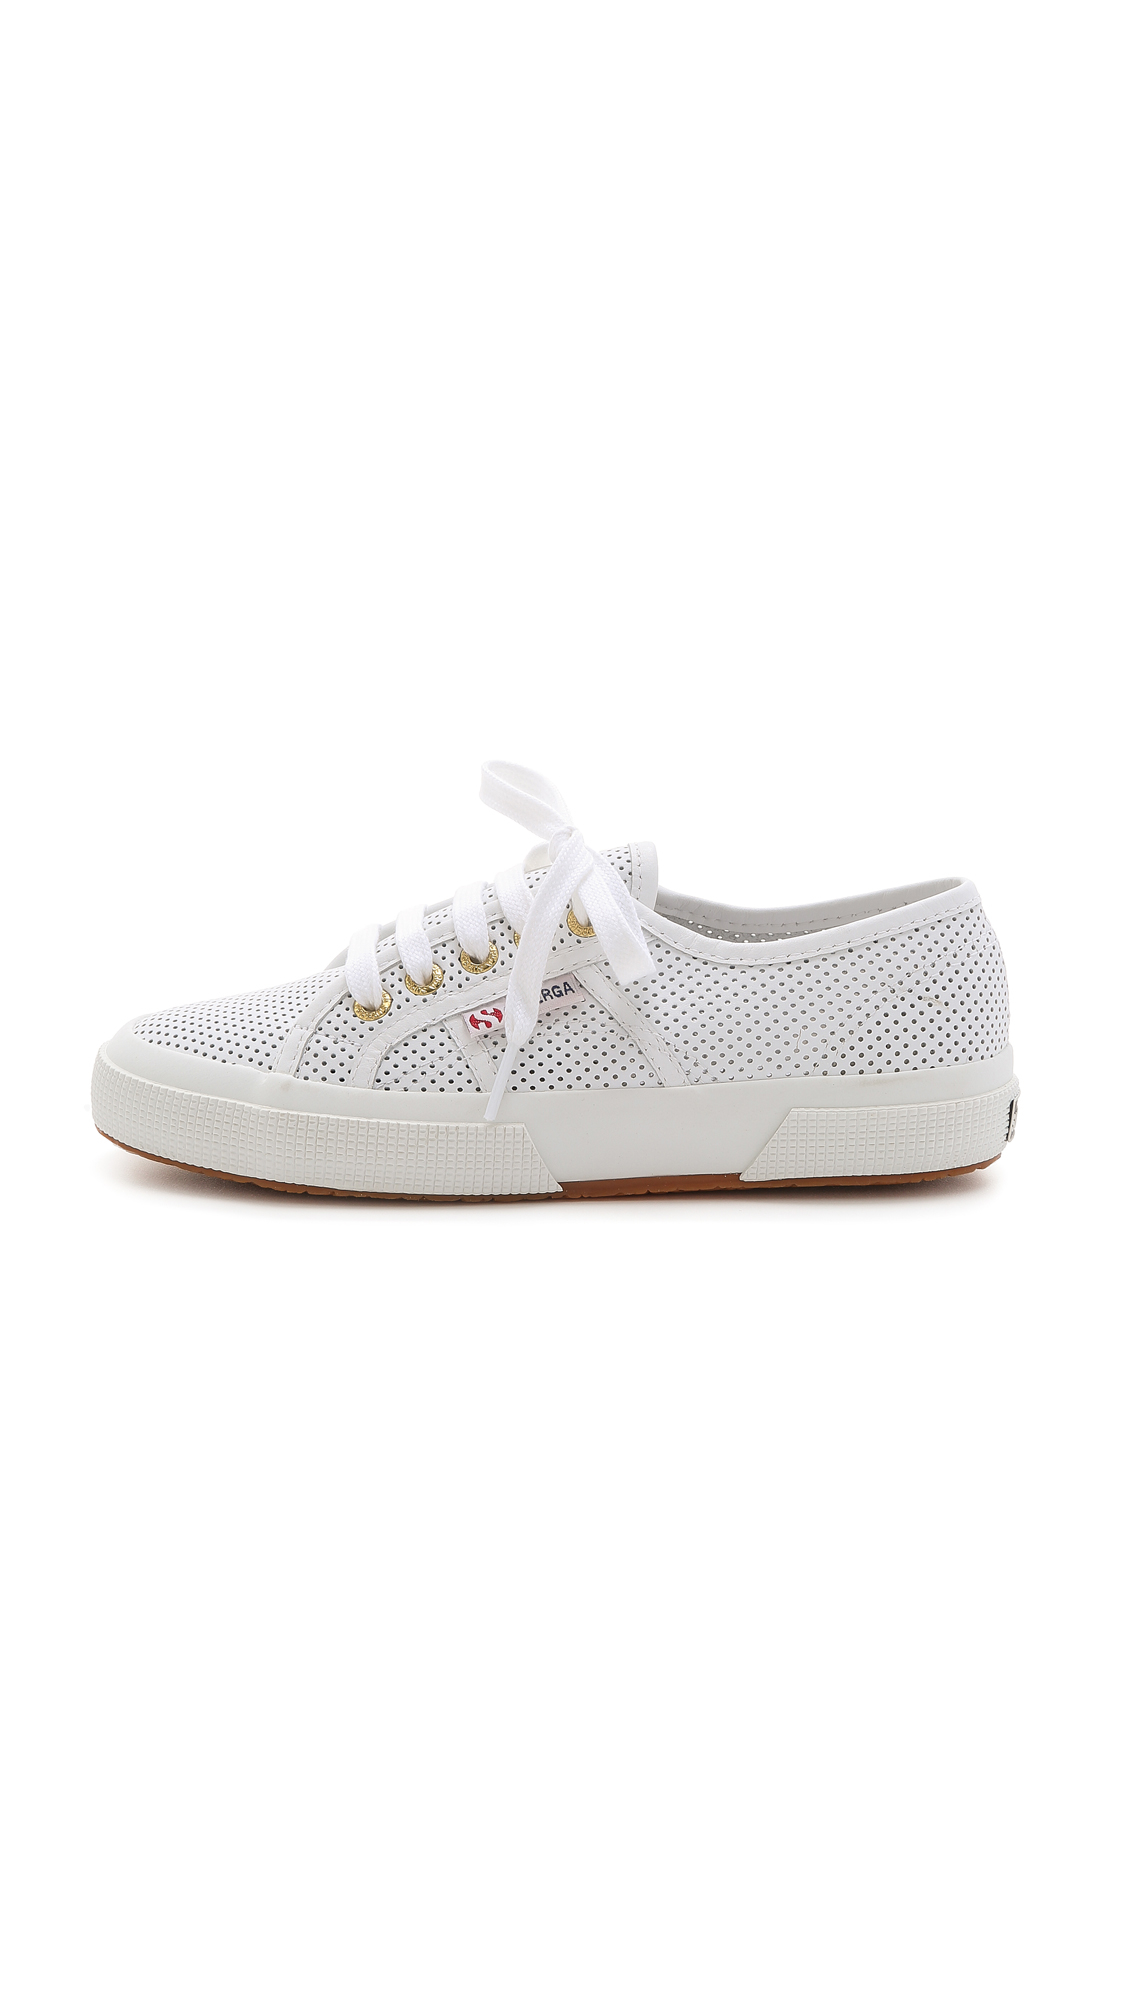 Superga Perforated Leather Sneakers - White